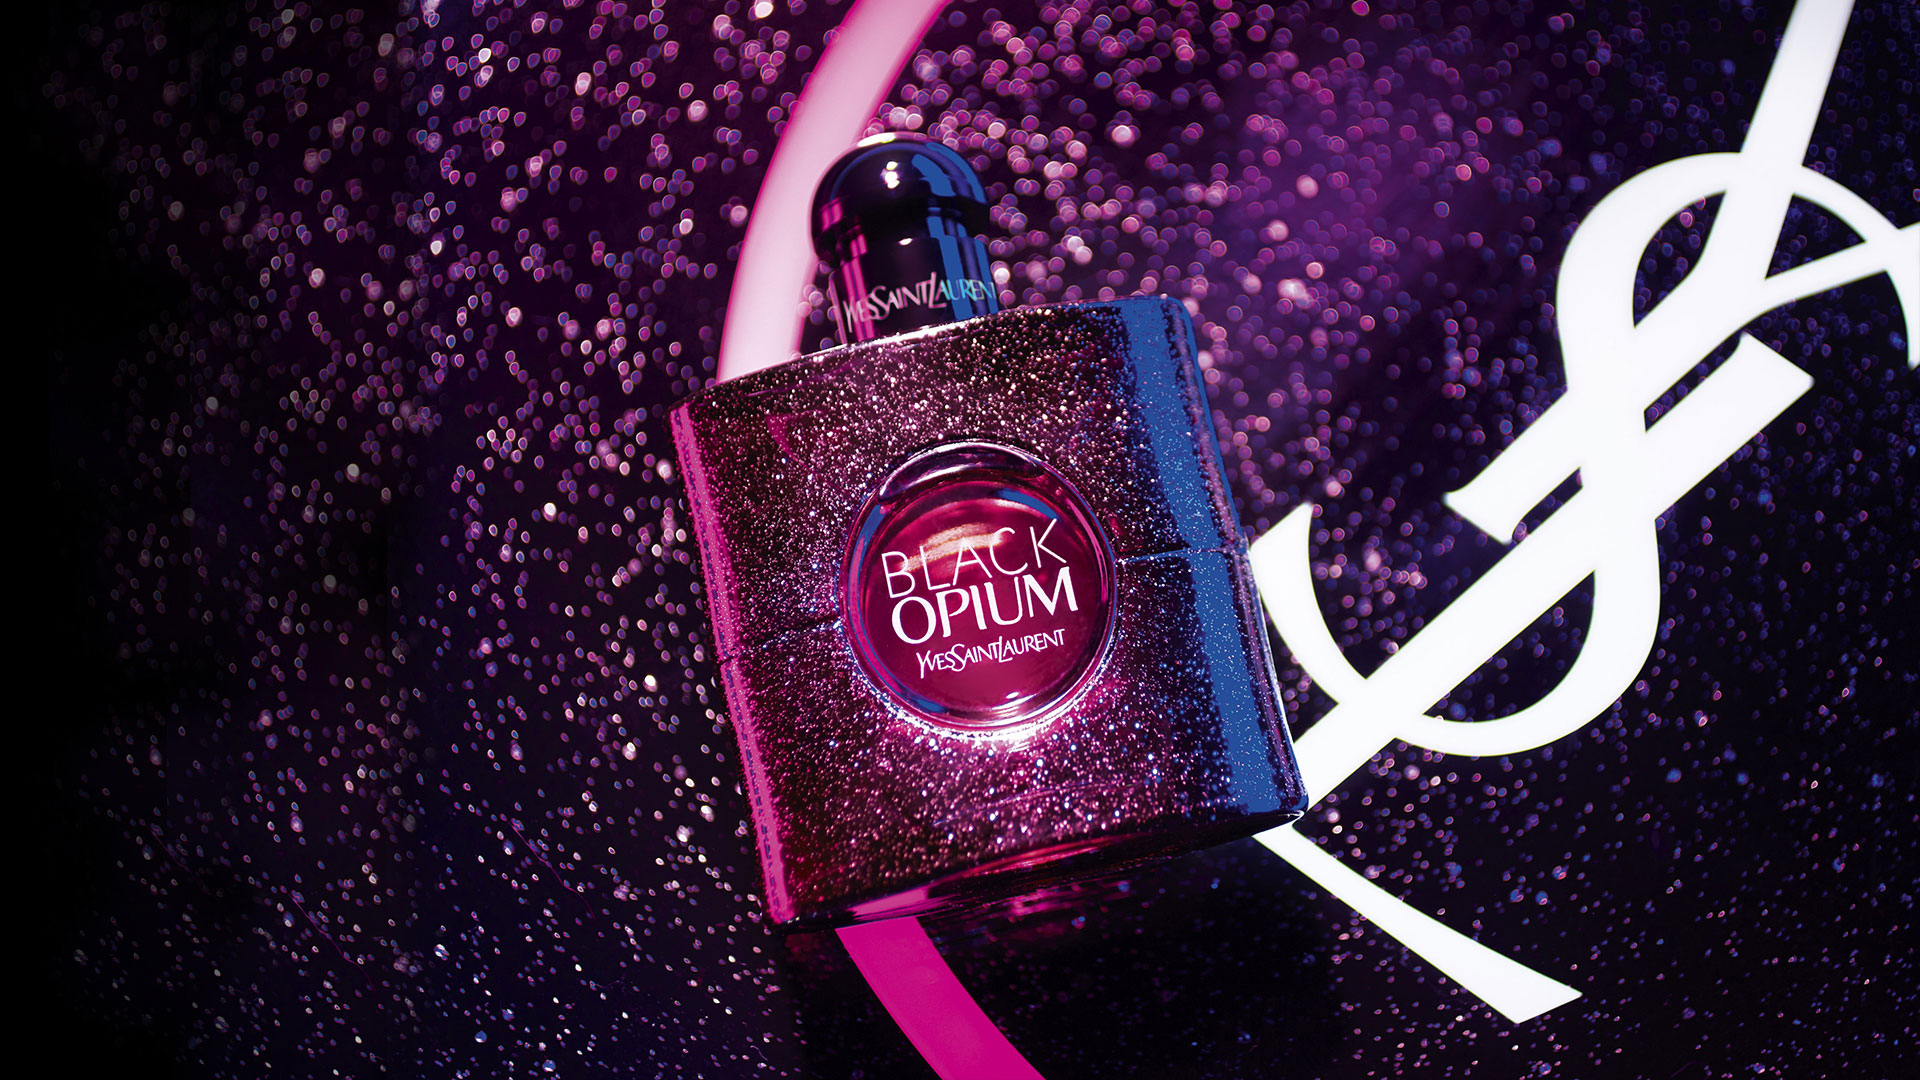 parfum black opium yves saint laurent